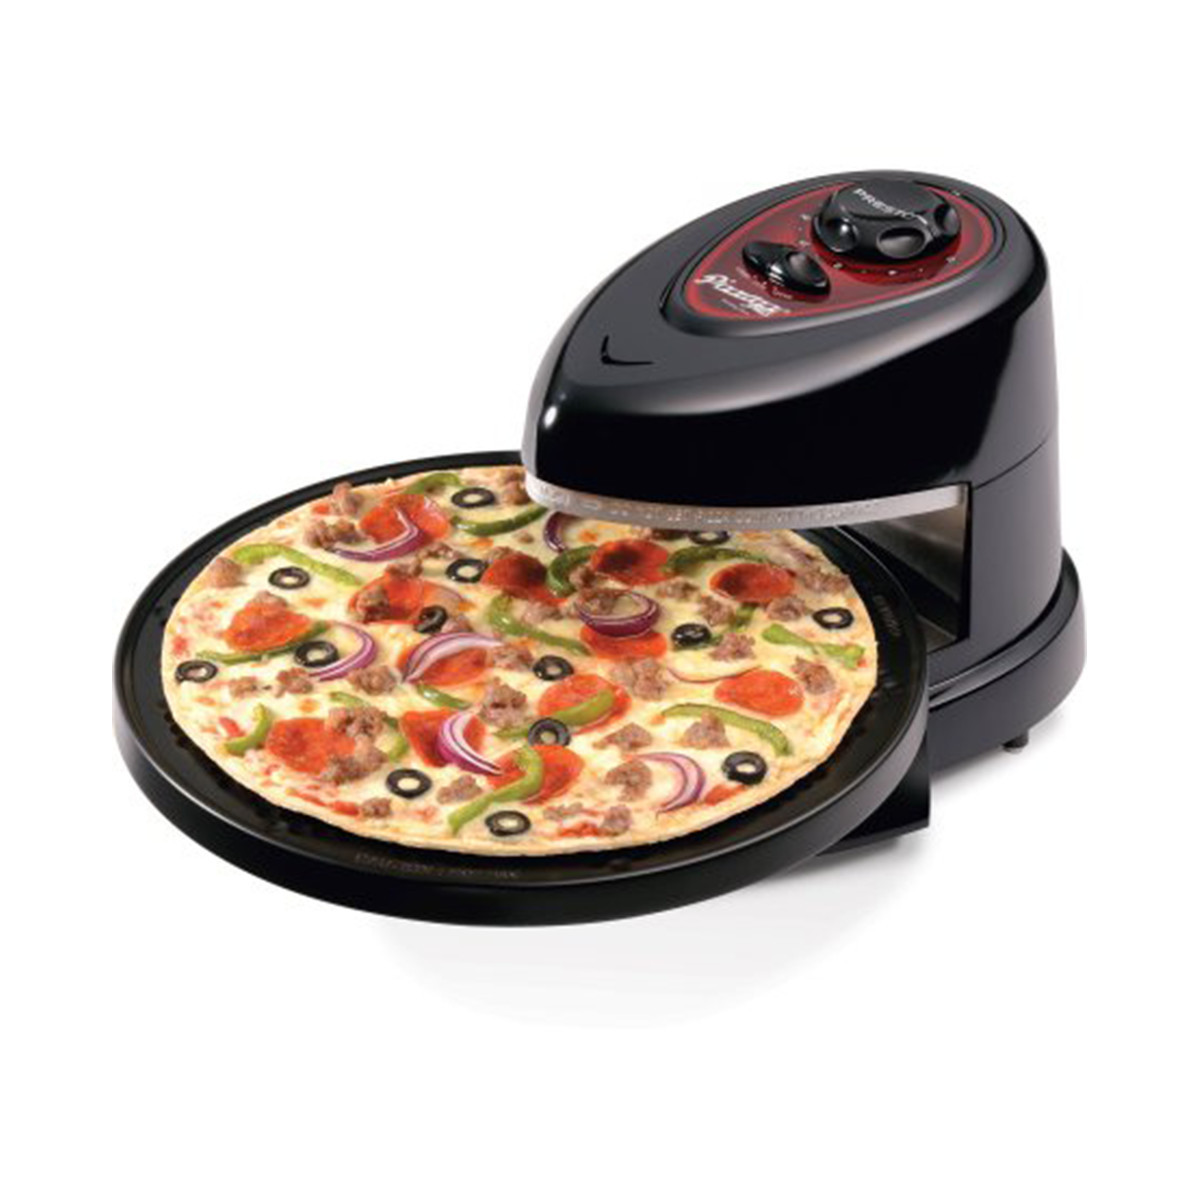 Small black and red pizza oven with a supreme pizza cooking on it photo